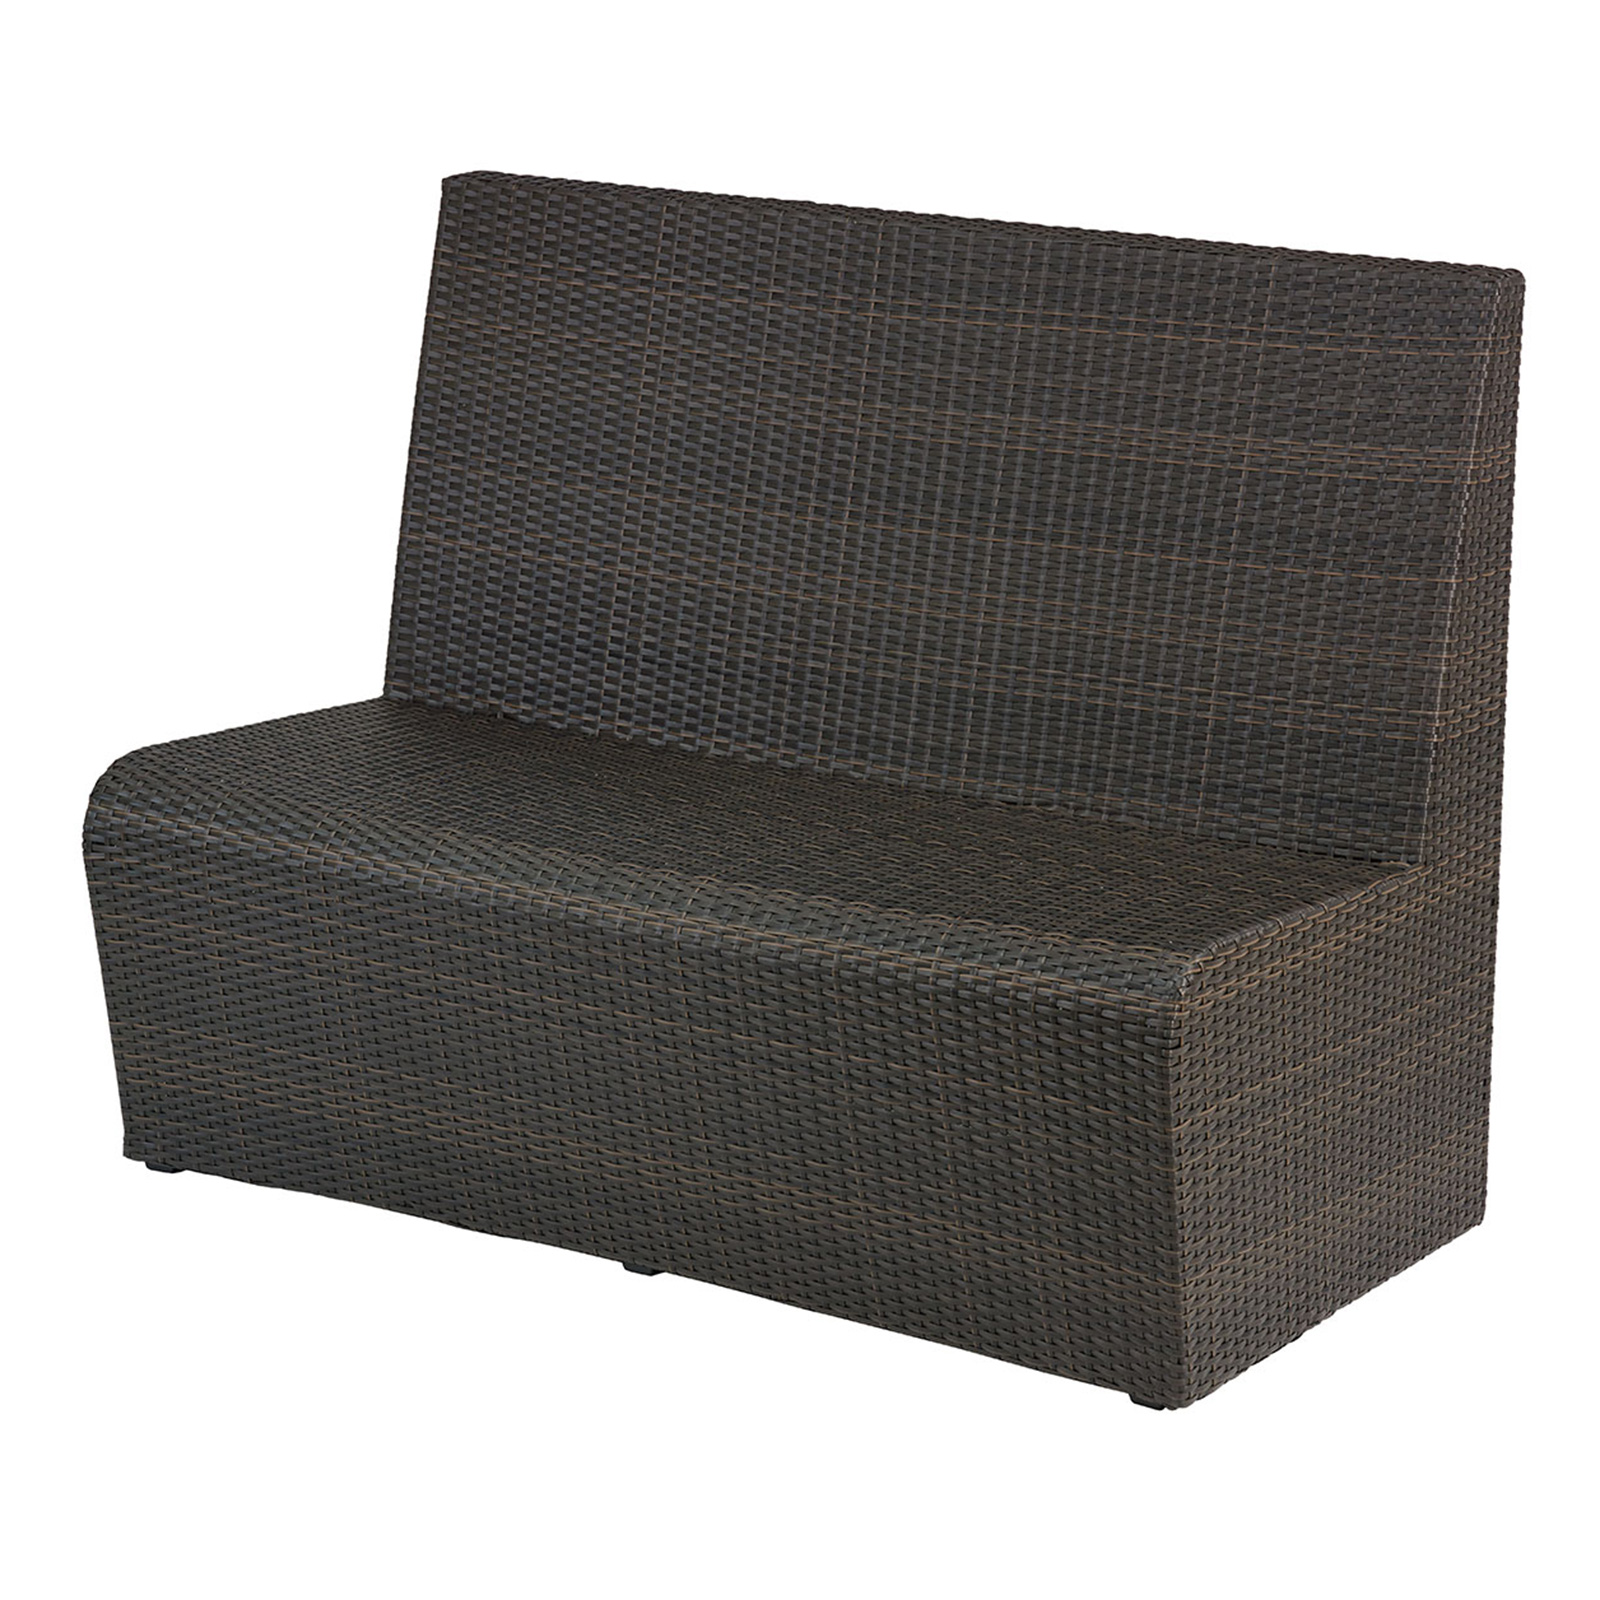 Florida Seating CB BOOTH sofa seating, outdoor